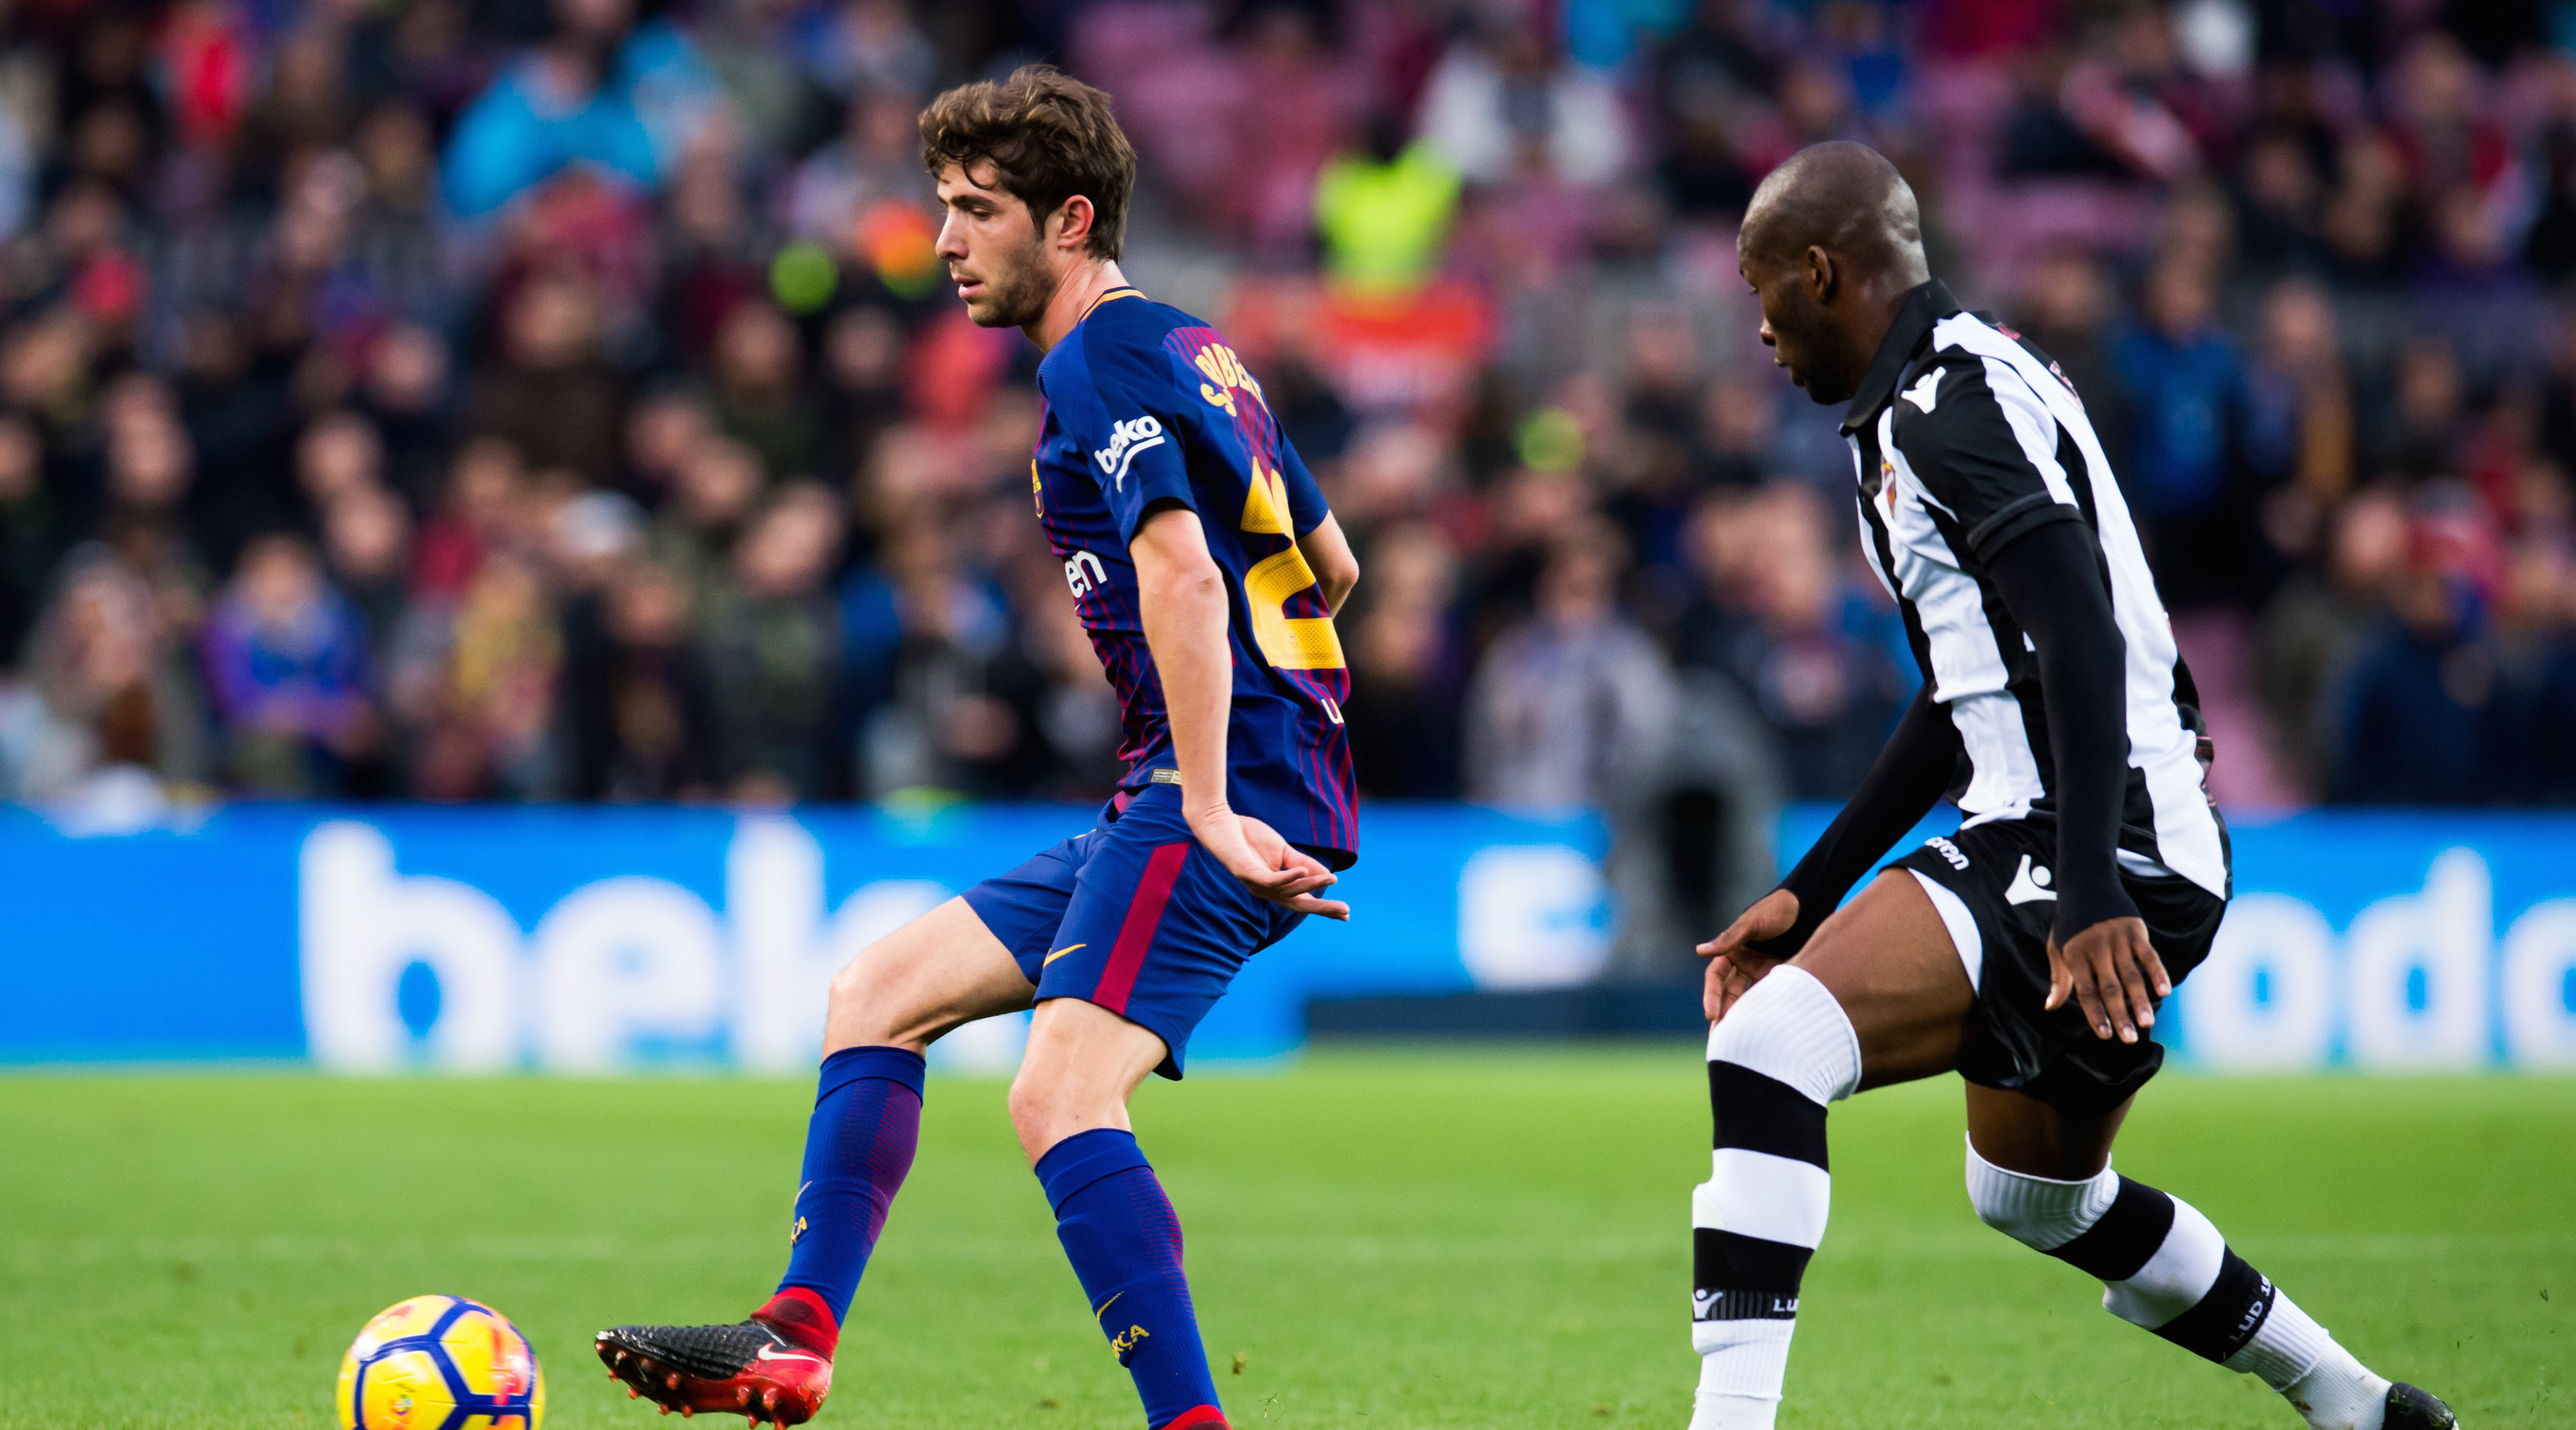 BARCELONA, SPAIN - JANUARY 07: Sergi Roberto of FC Barcelona plays the ball past Jefferson Lerma of Levante UD during the La Liga match between Barcelona and Levante at Camp Nou on January 7, 2018 in Barcelona, Spain. (Photo by Alex Caparros/Getty Images)